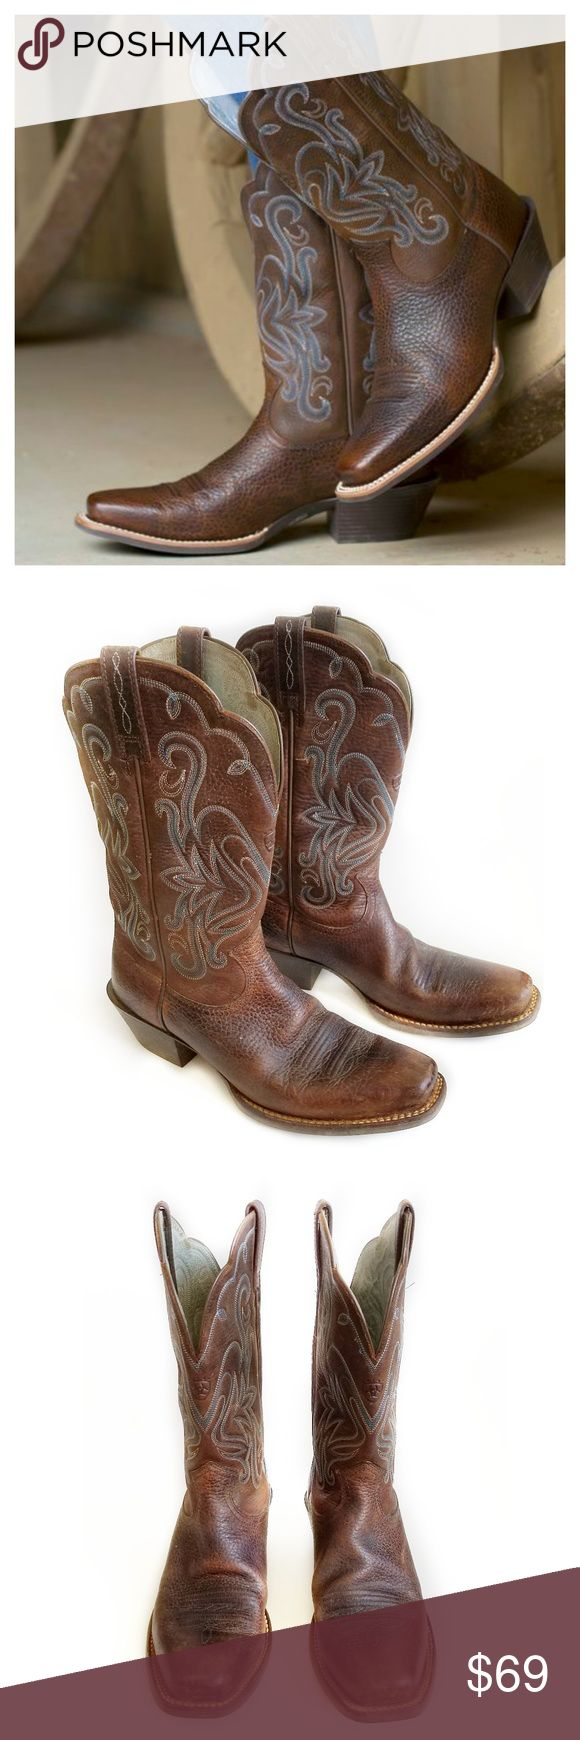 "Ariat Women's Rowdy Legend Western Boots Sz 8.5 Ariat Women's Rowdy Legend Boots Sz 8.5. A stylish western footwear option as seen in Bridal Guide magazine. Low profile riding boot with superior comfort ATS technology Ariat boots for all-day comfort & support. Full grain leather foot, 11"" shaft,Stabilizing composite fiber forked shank, Flexible, long-wearing Duratread outsole with Goodyear leather welt at home on a Motorcycle as well as a horse. A stylish riding boot for you! Very good…"